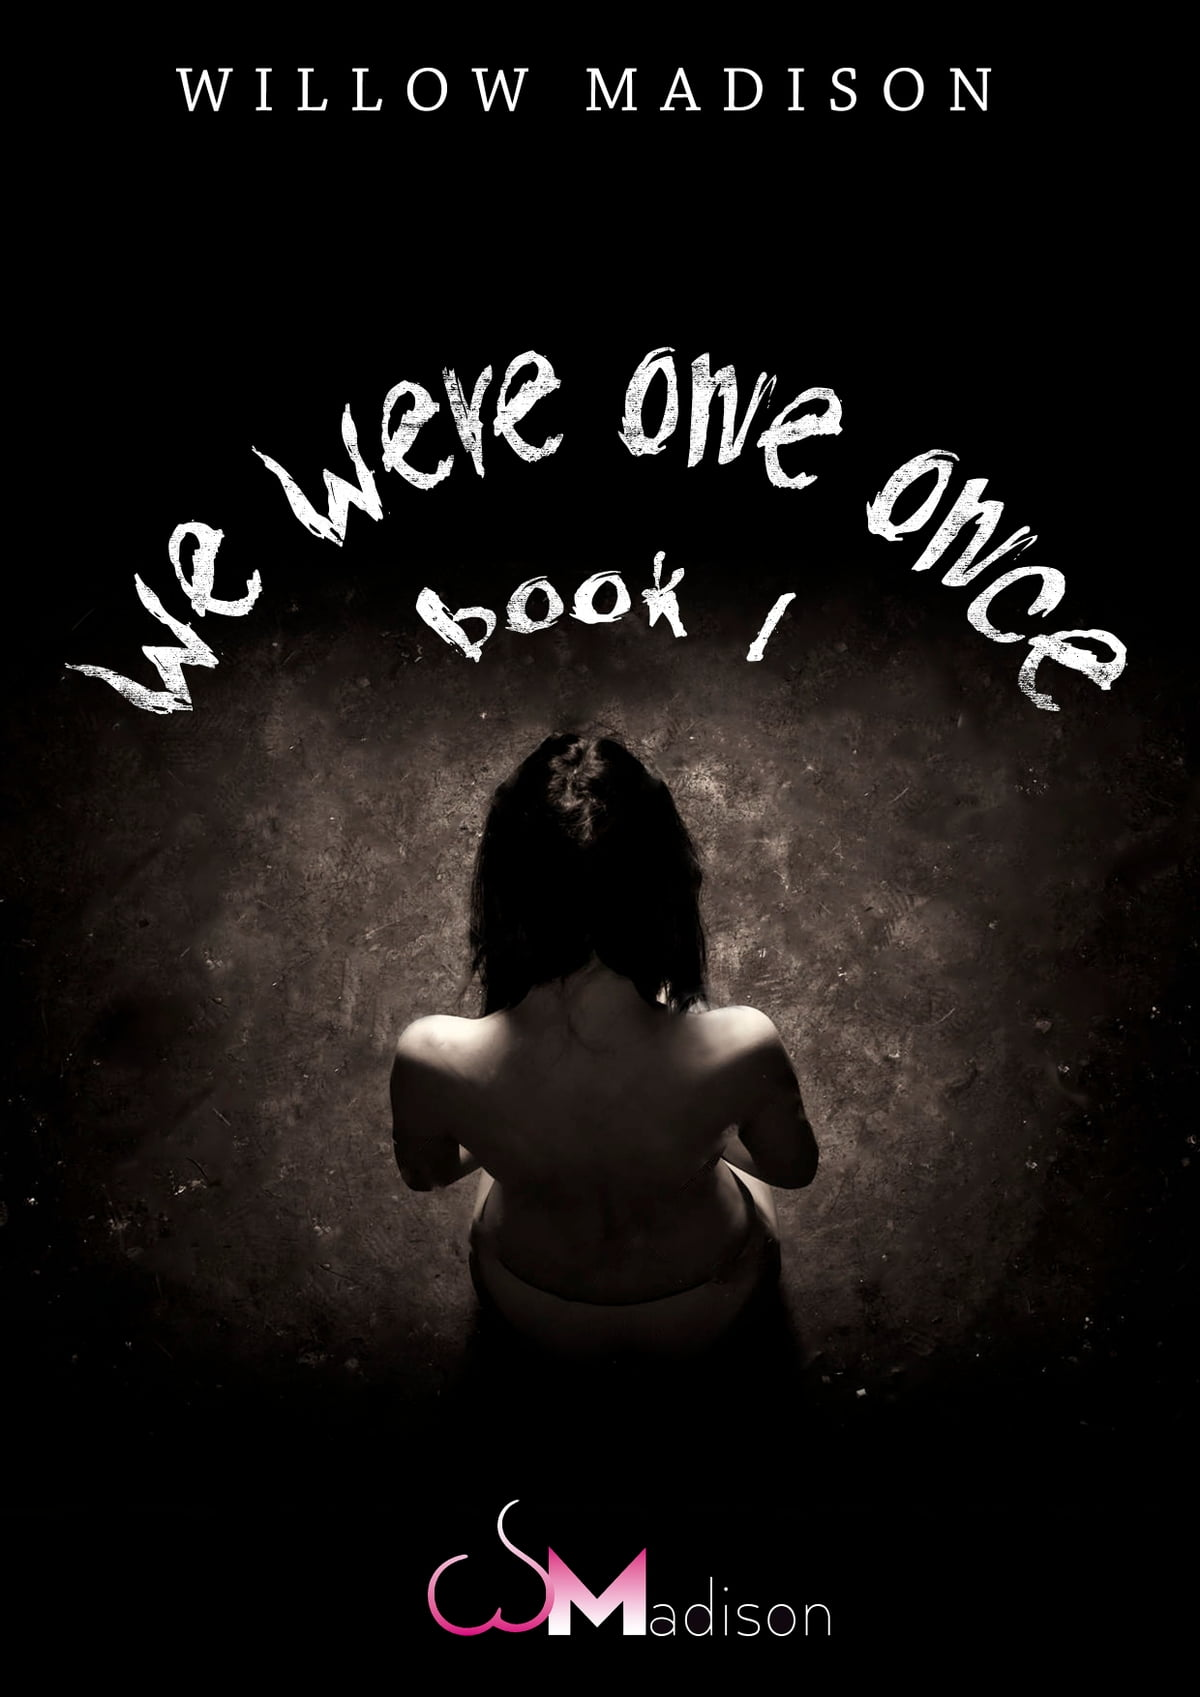 We were one once book 1 ebook by willow madison 9780996319171 we were one once book 1 ebook by willow madison 9780996319171 rakuten kobo fandeluxe PDF